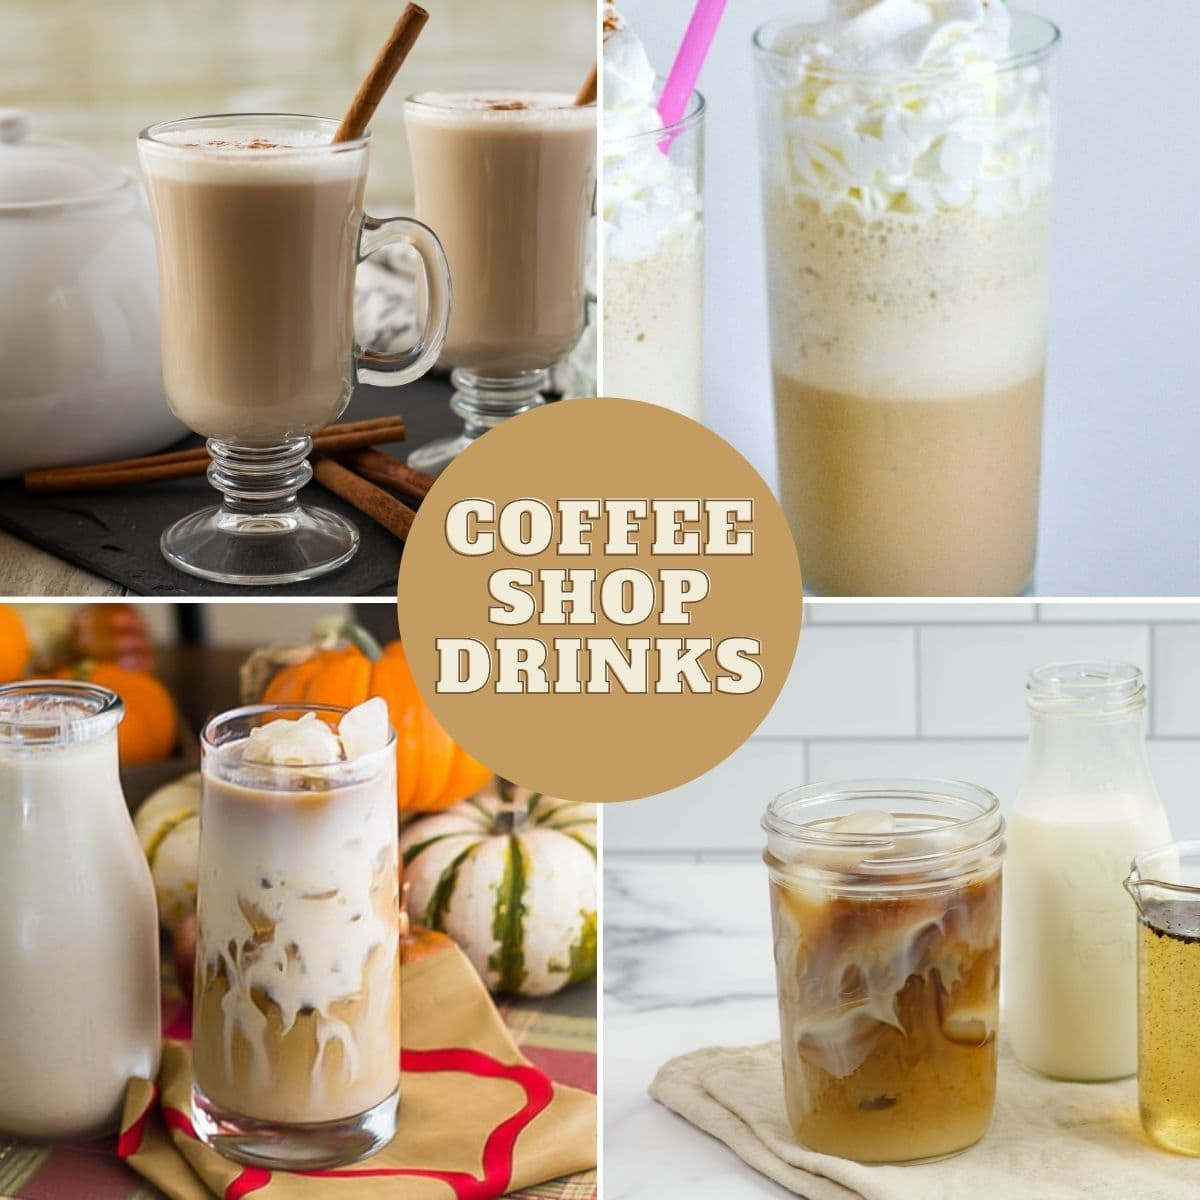 4 photo collage of coffee house drinks.